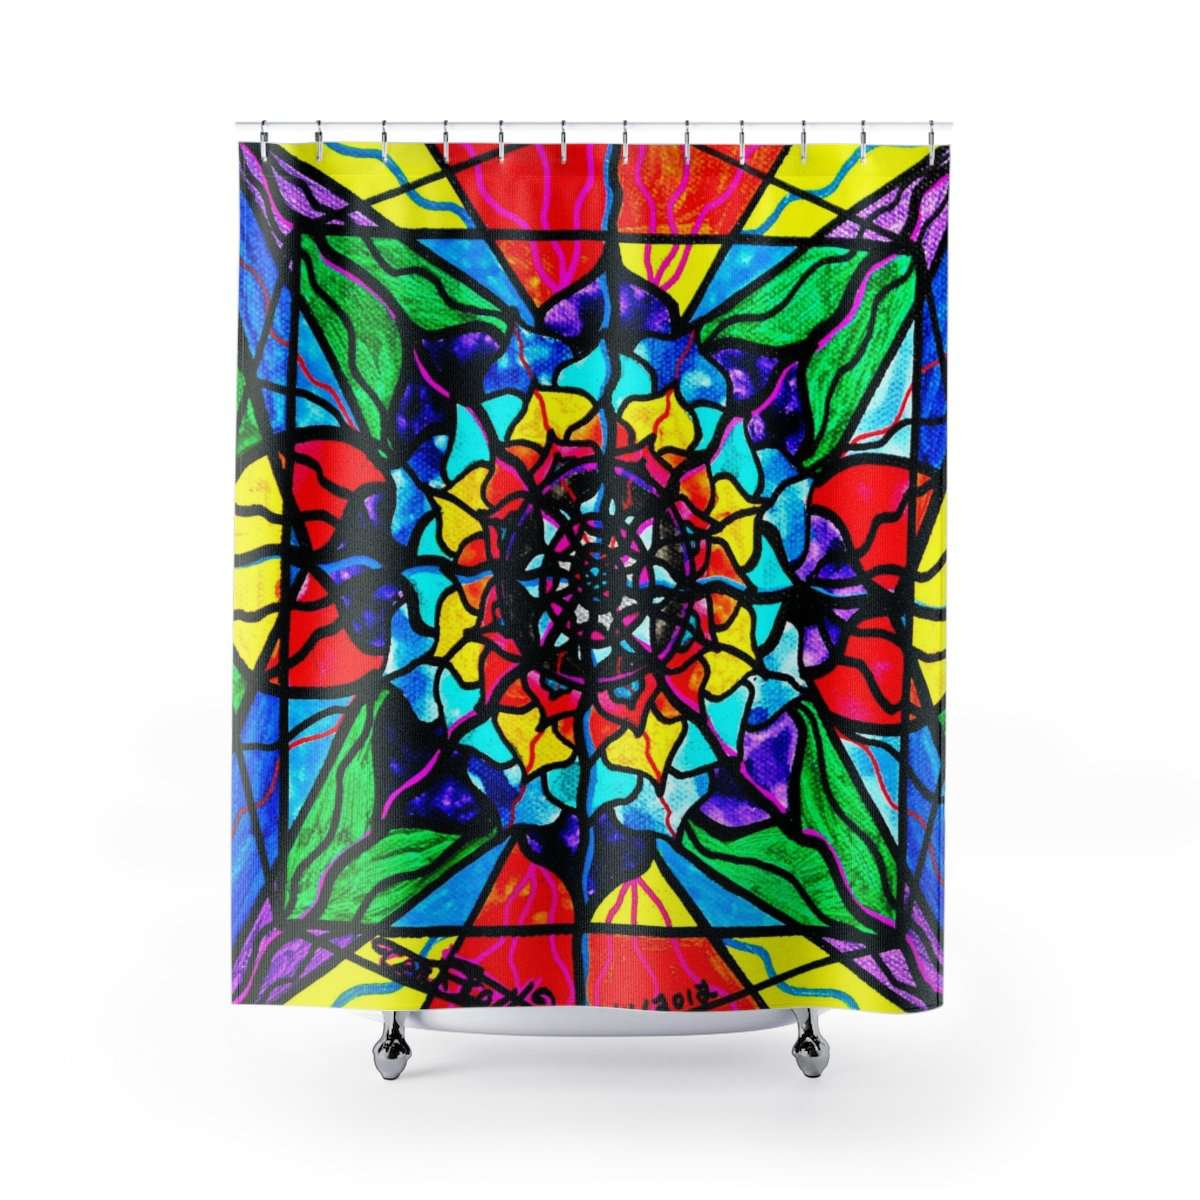 Personal Expansion - Shower Curtains